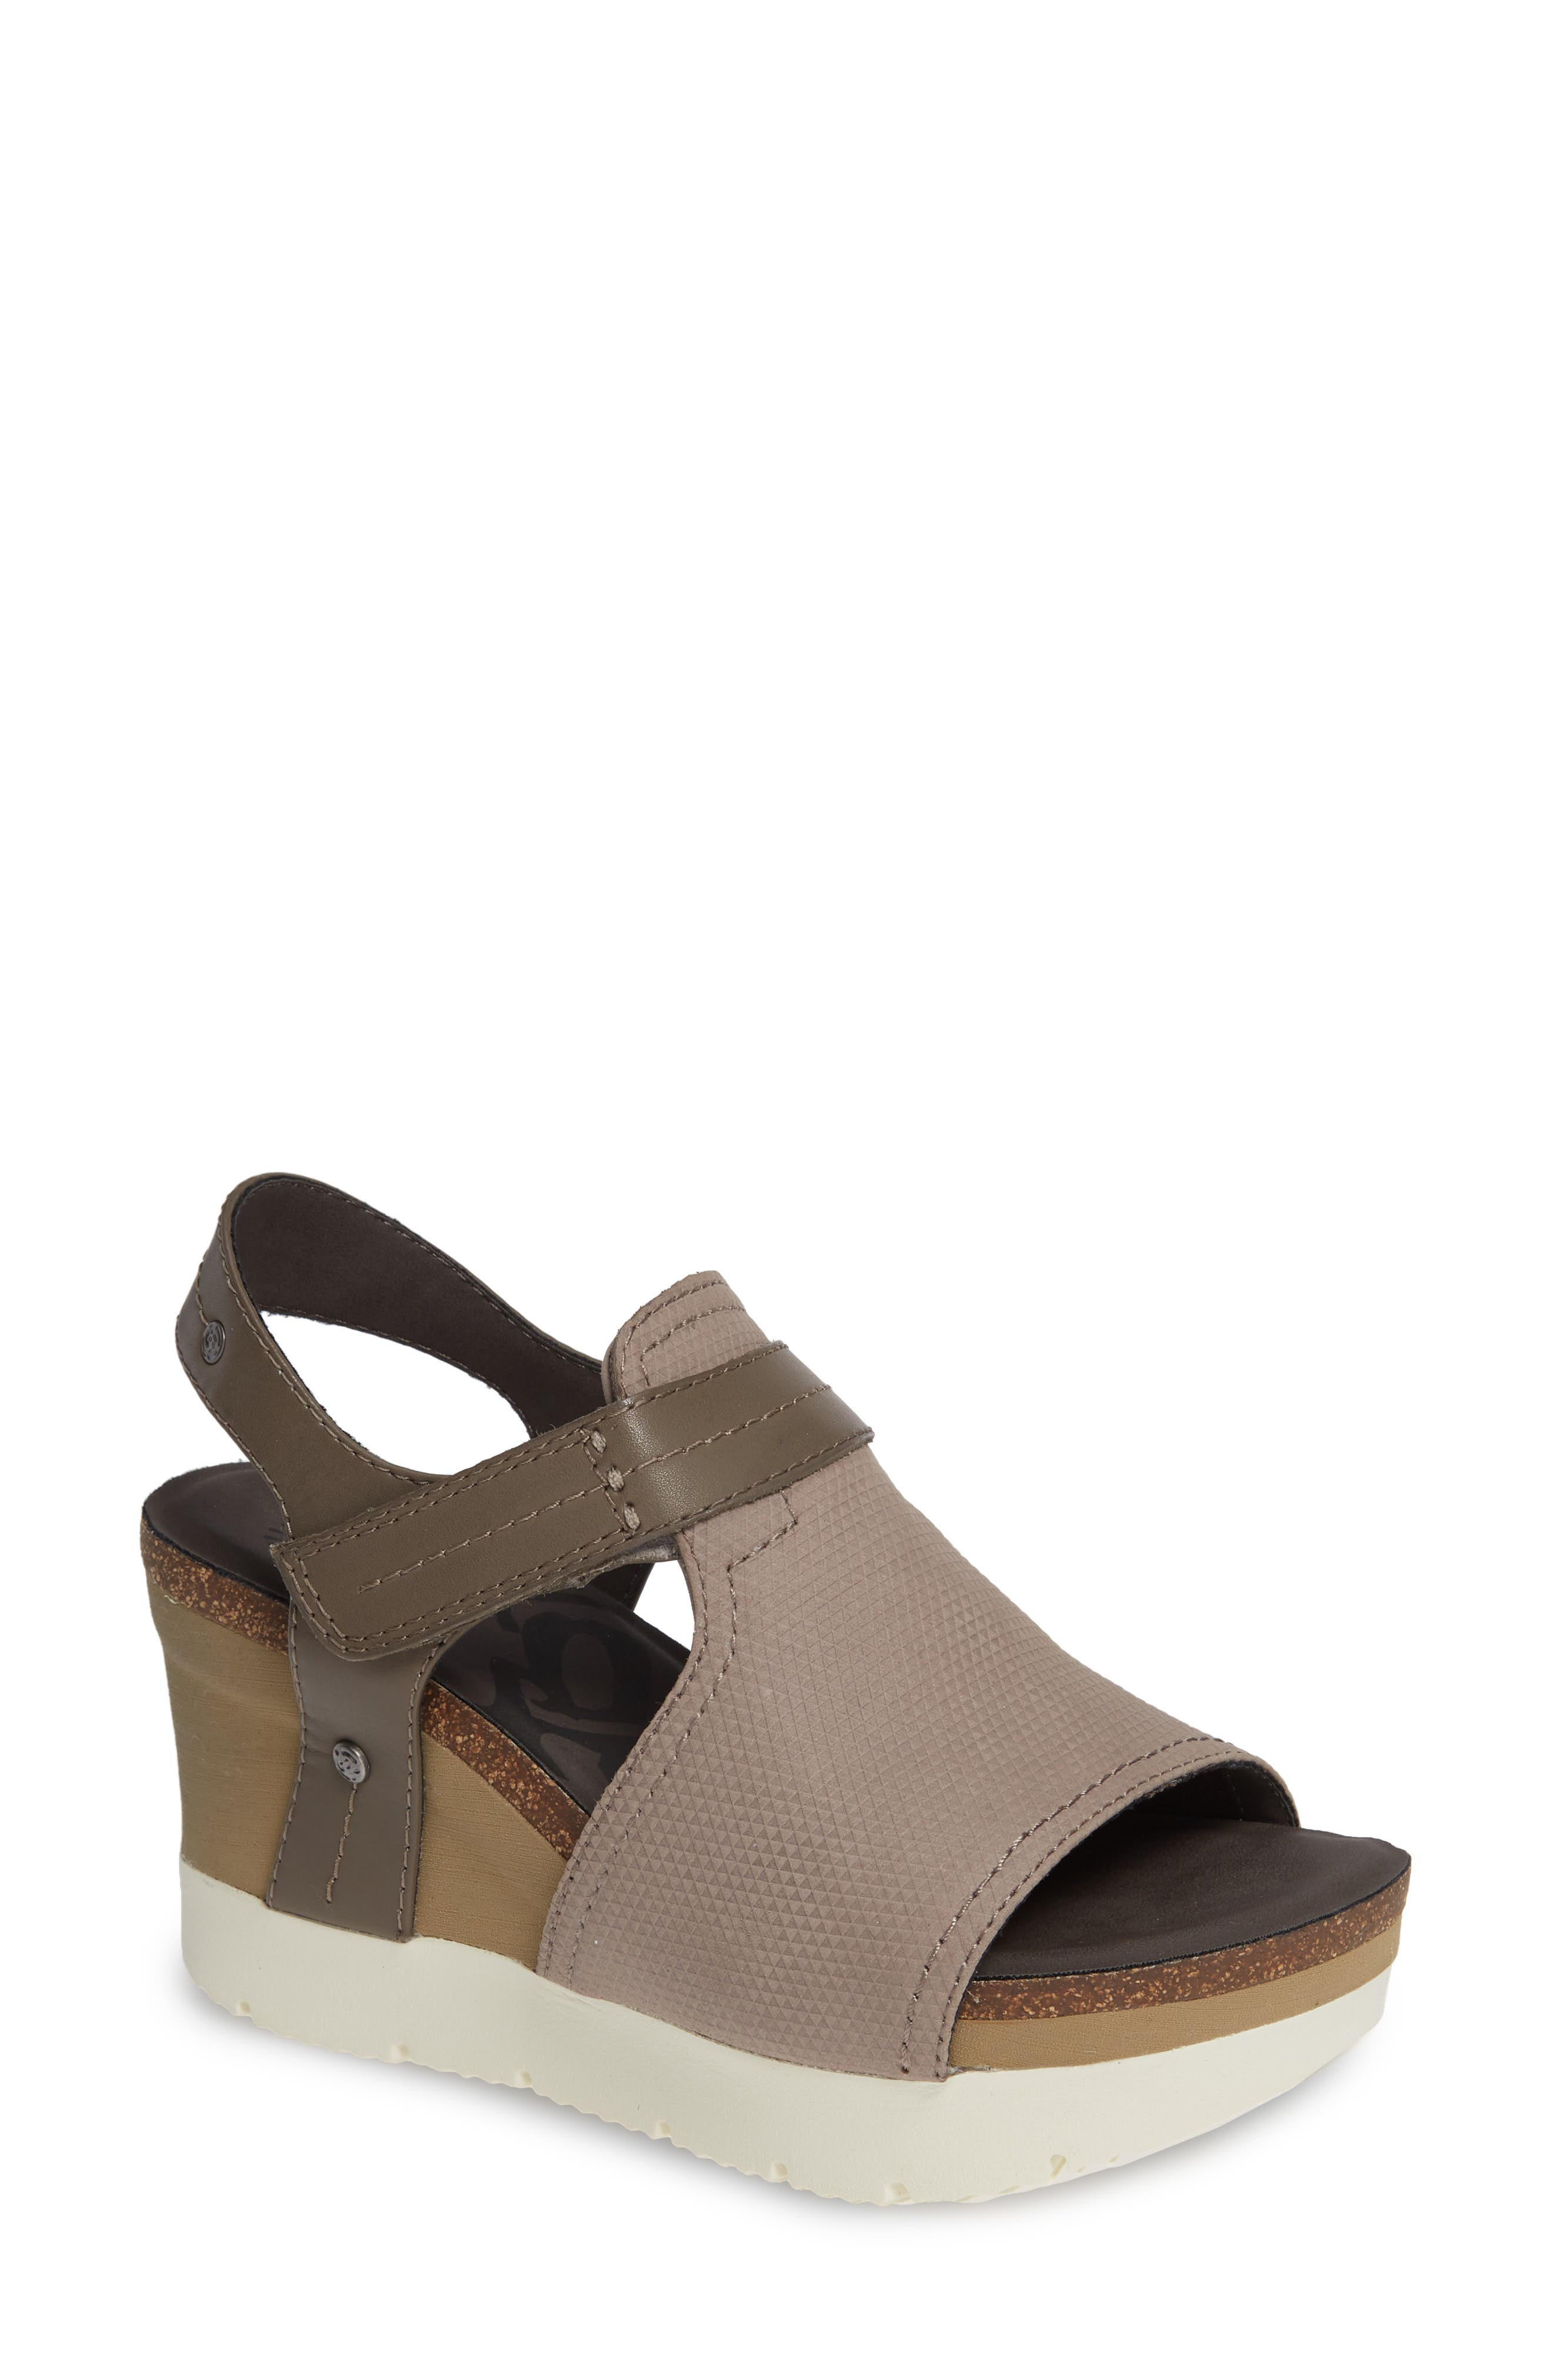 Waypoint Wedge Sandal,                         Main,                         color, CACAO LEATHER